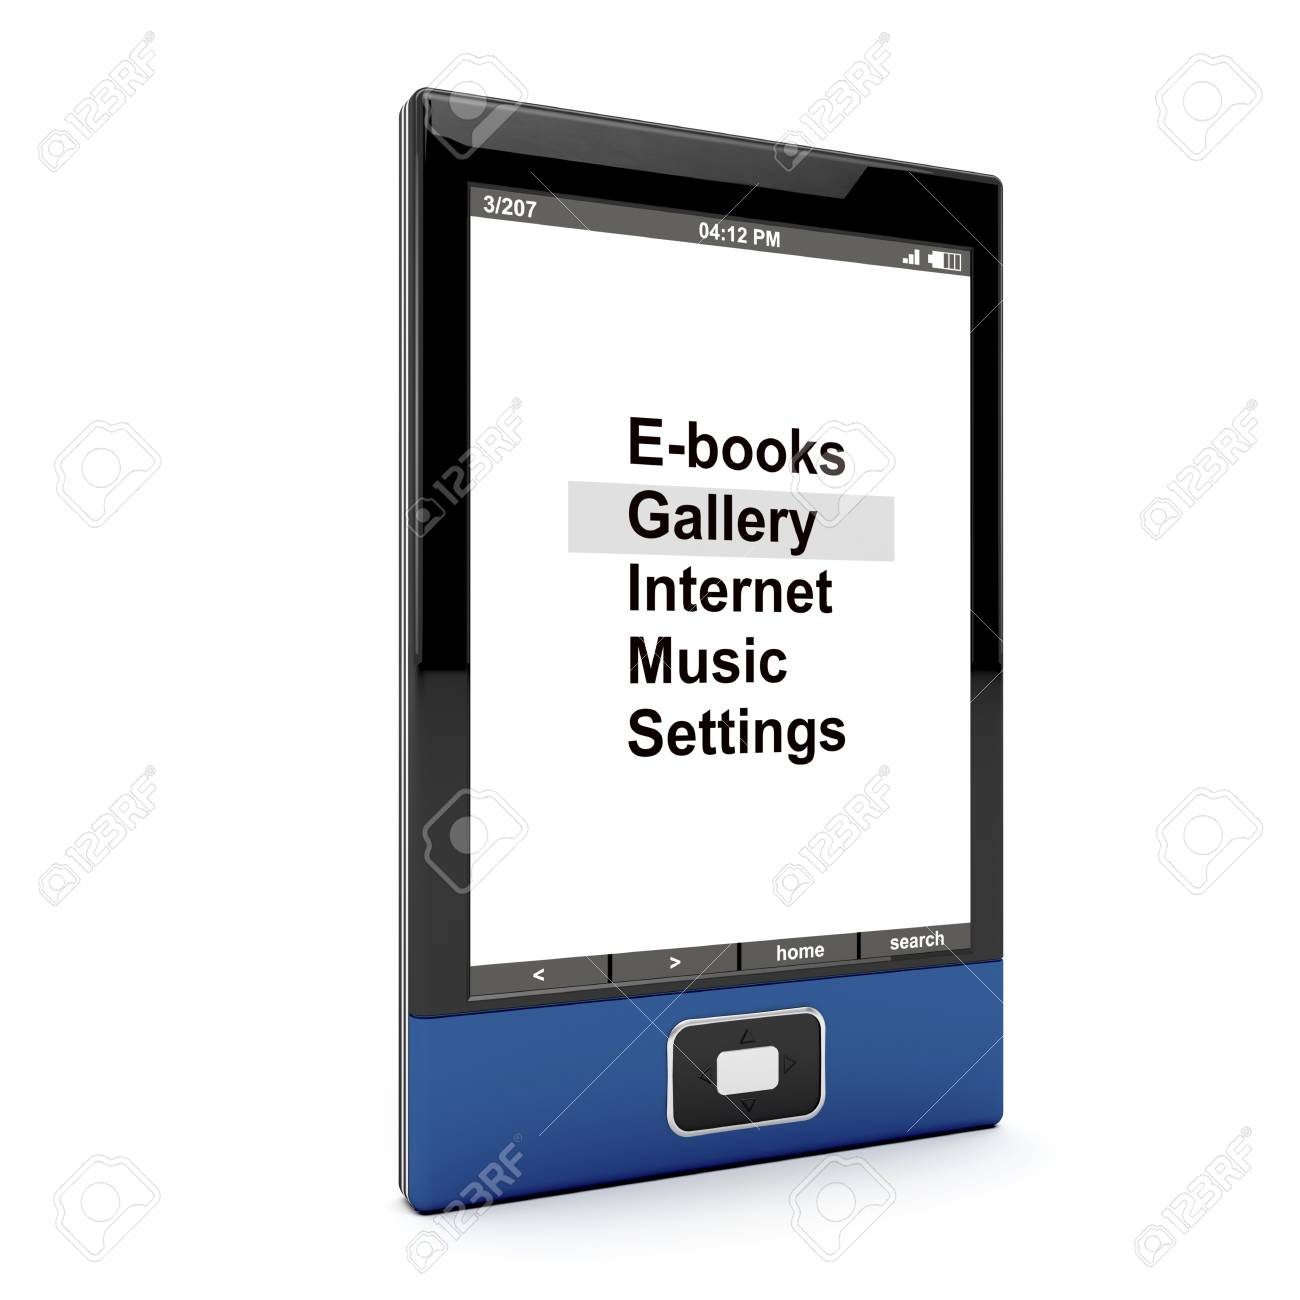 E-book reader on white background. 3d generated image. Stock Photo - 10191016